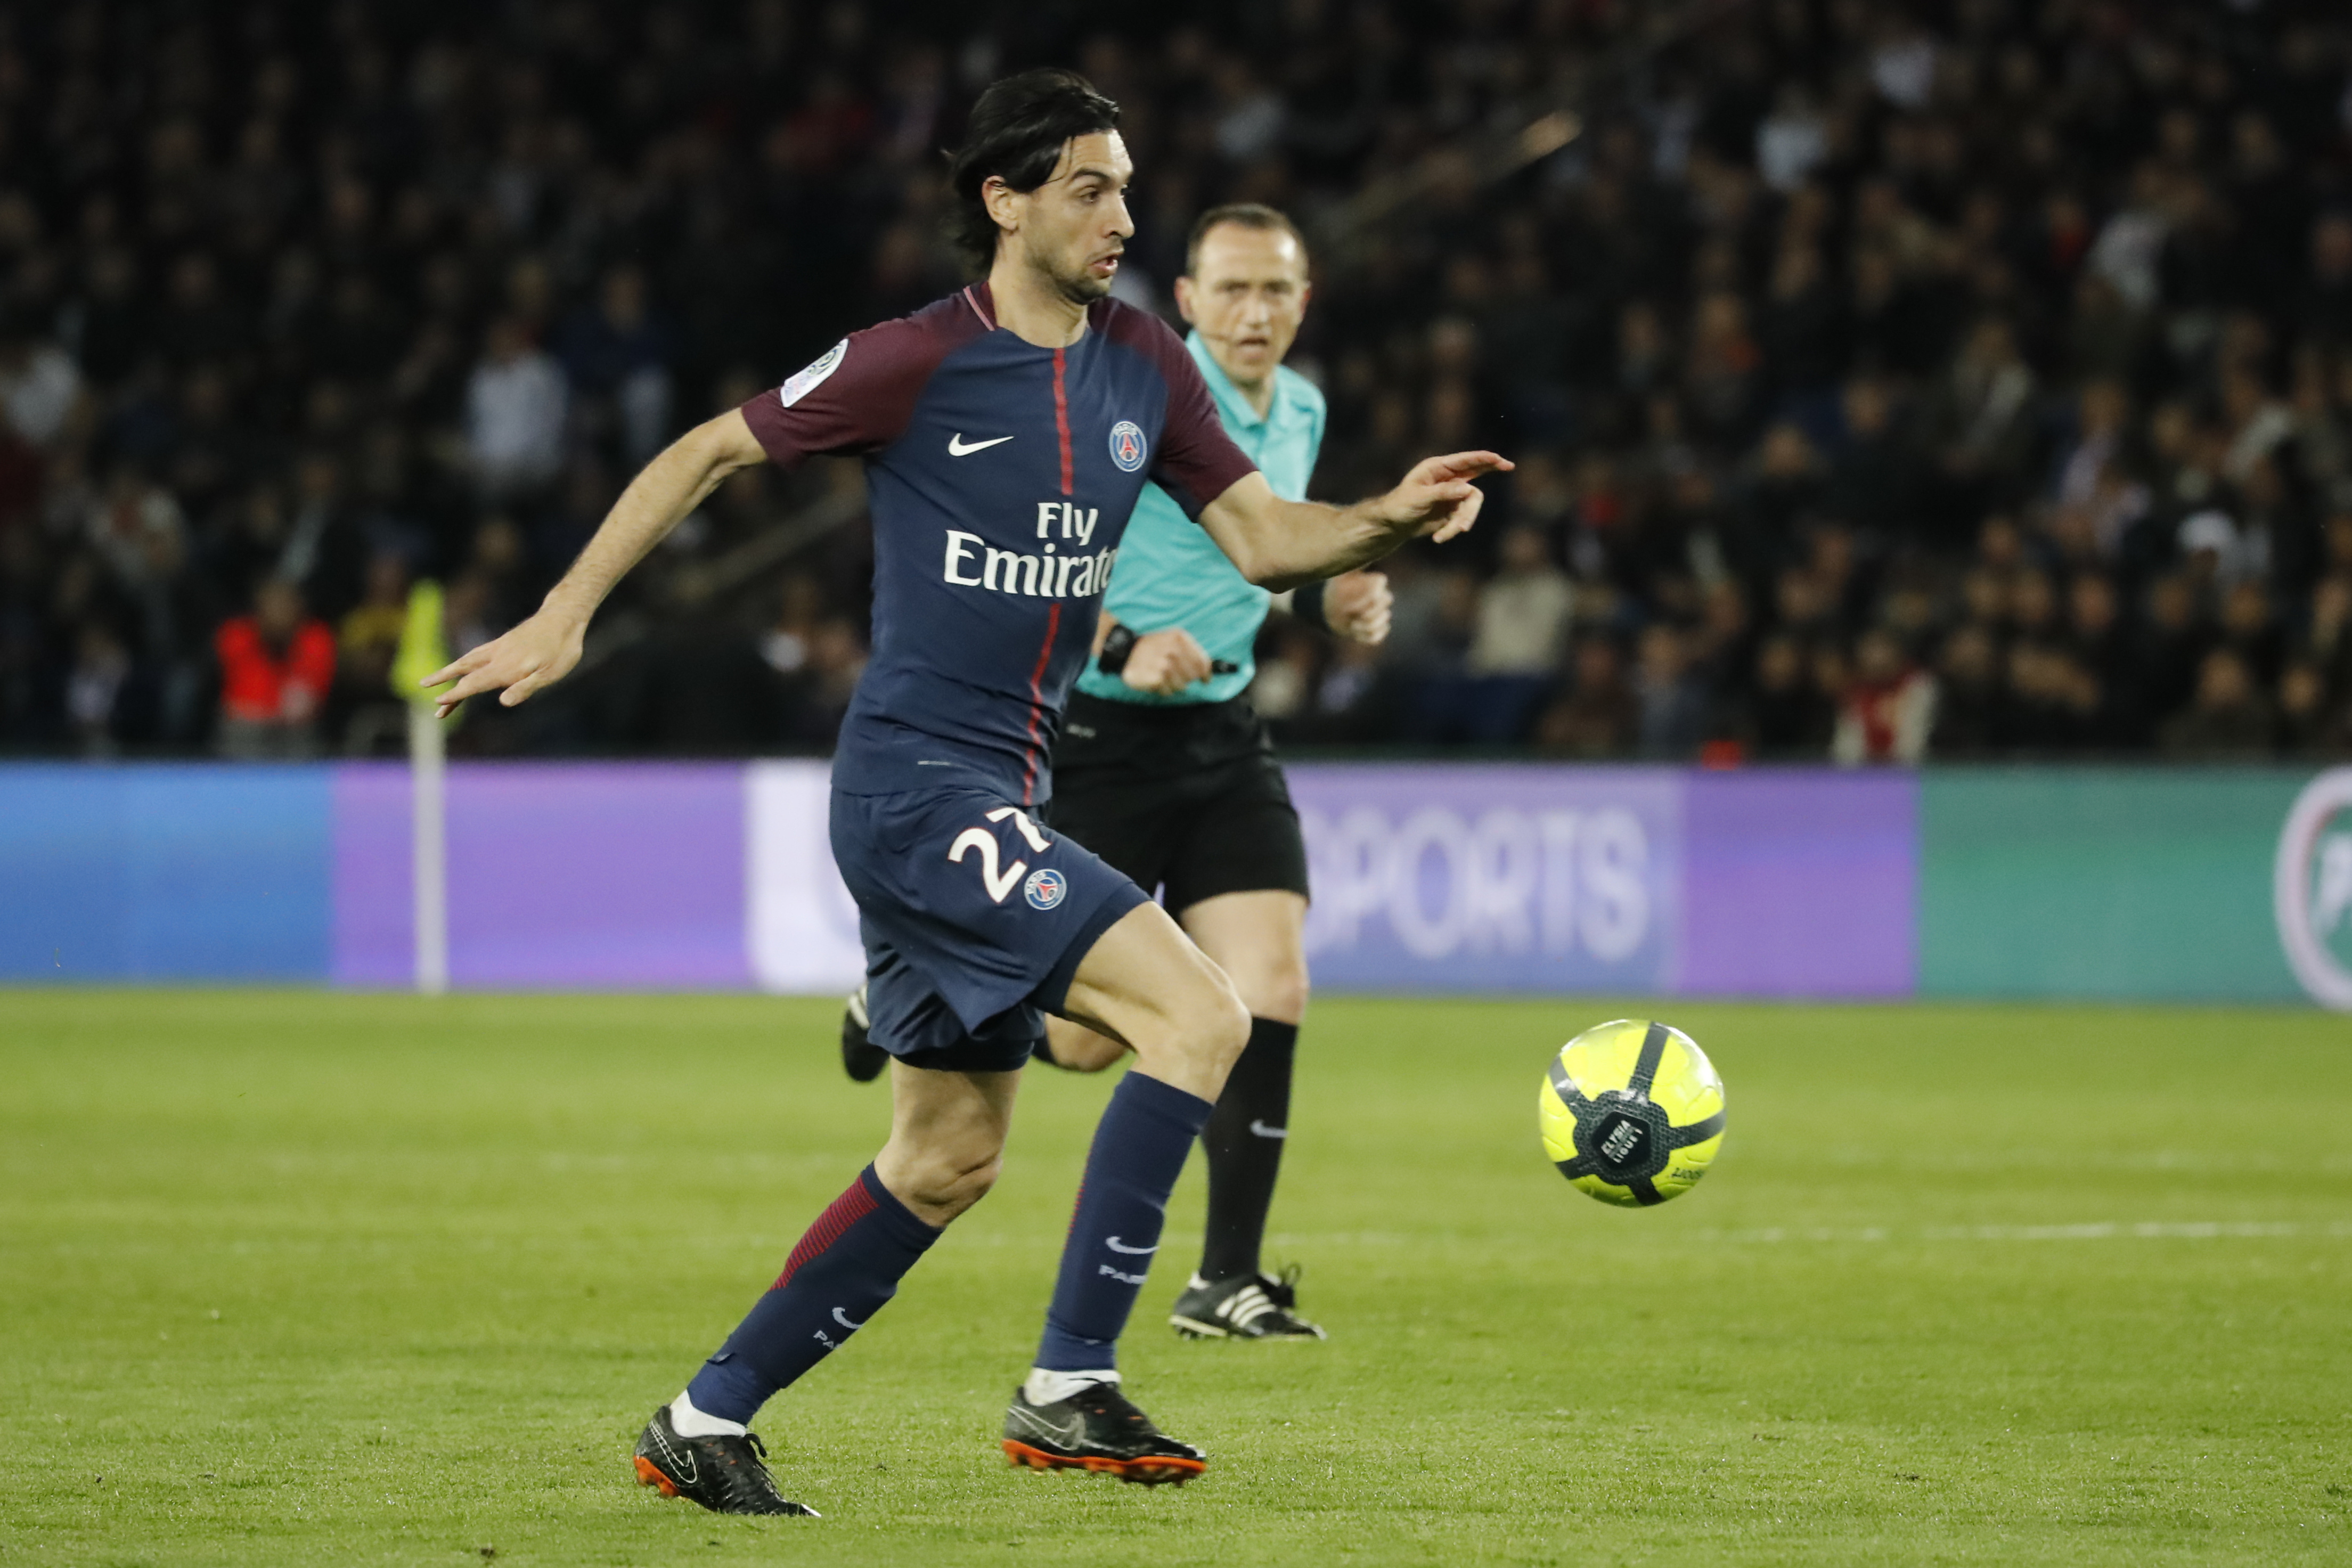 Pastore to West Ham